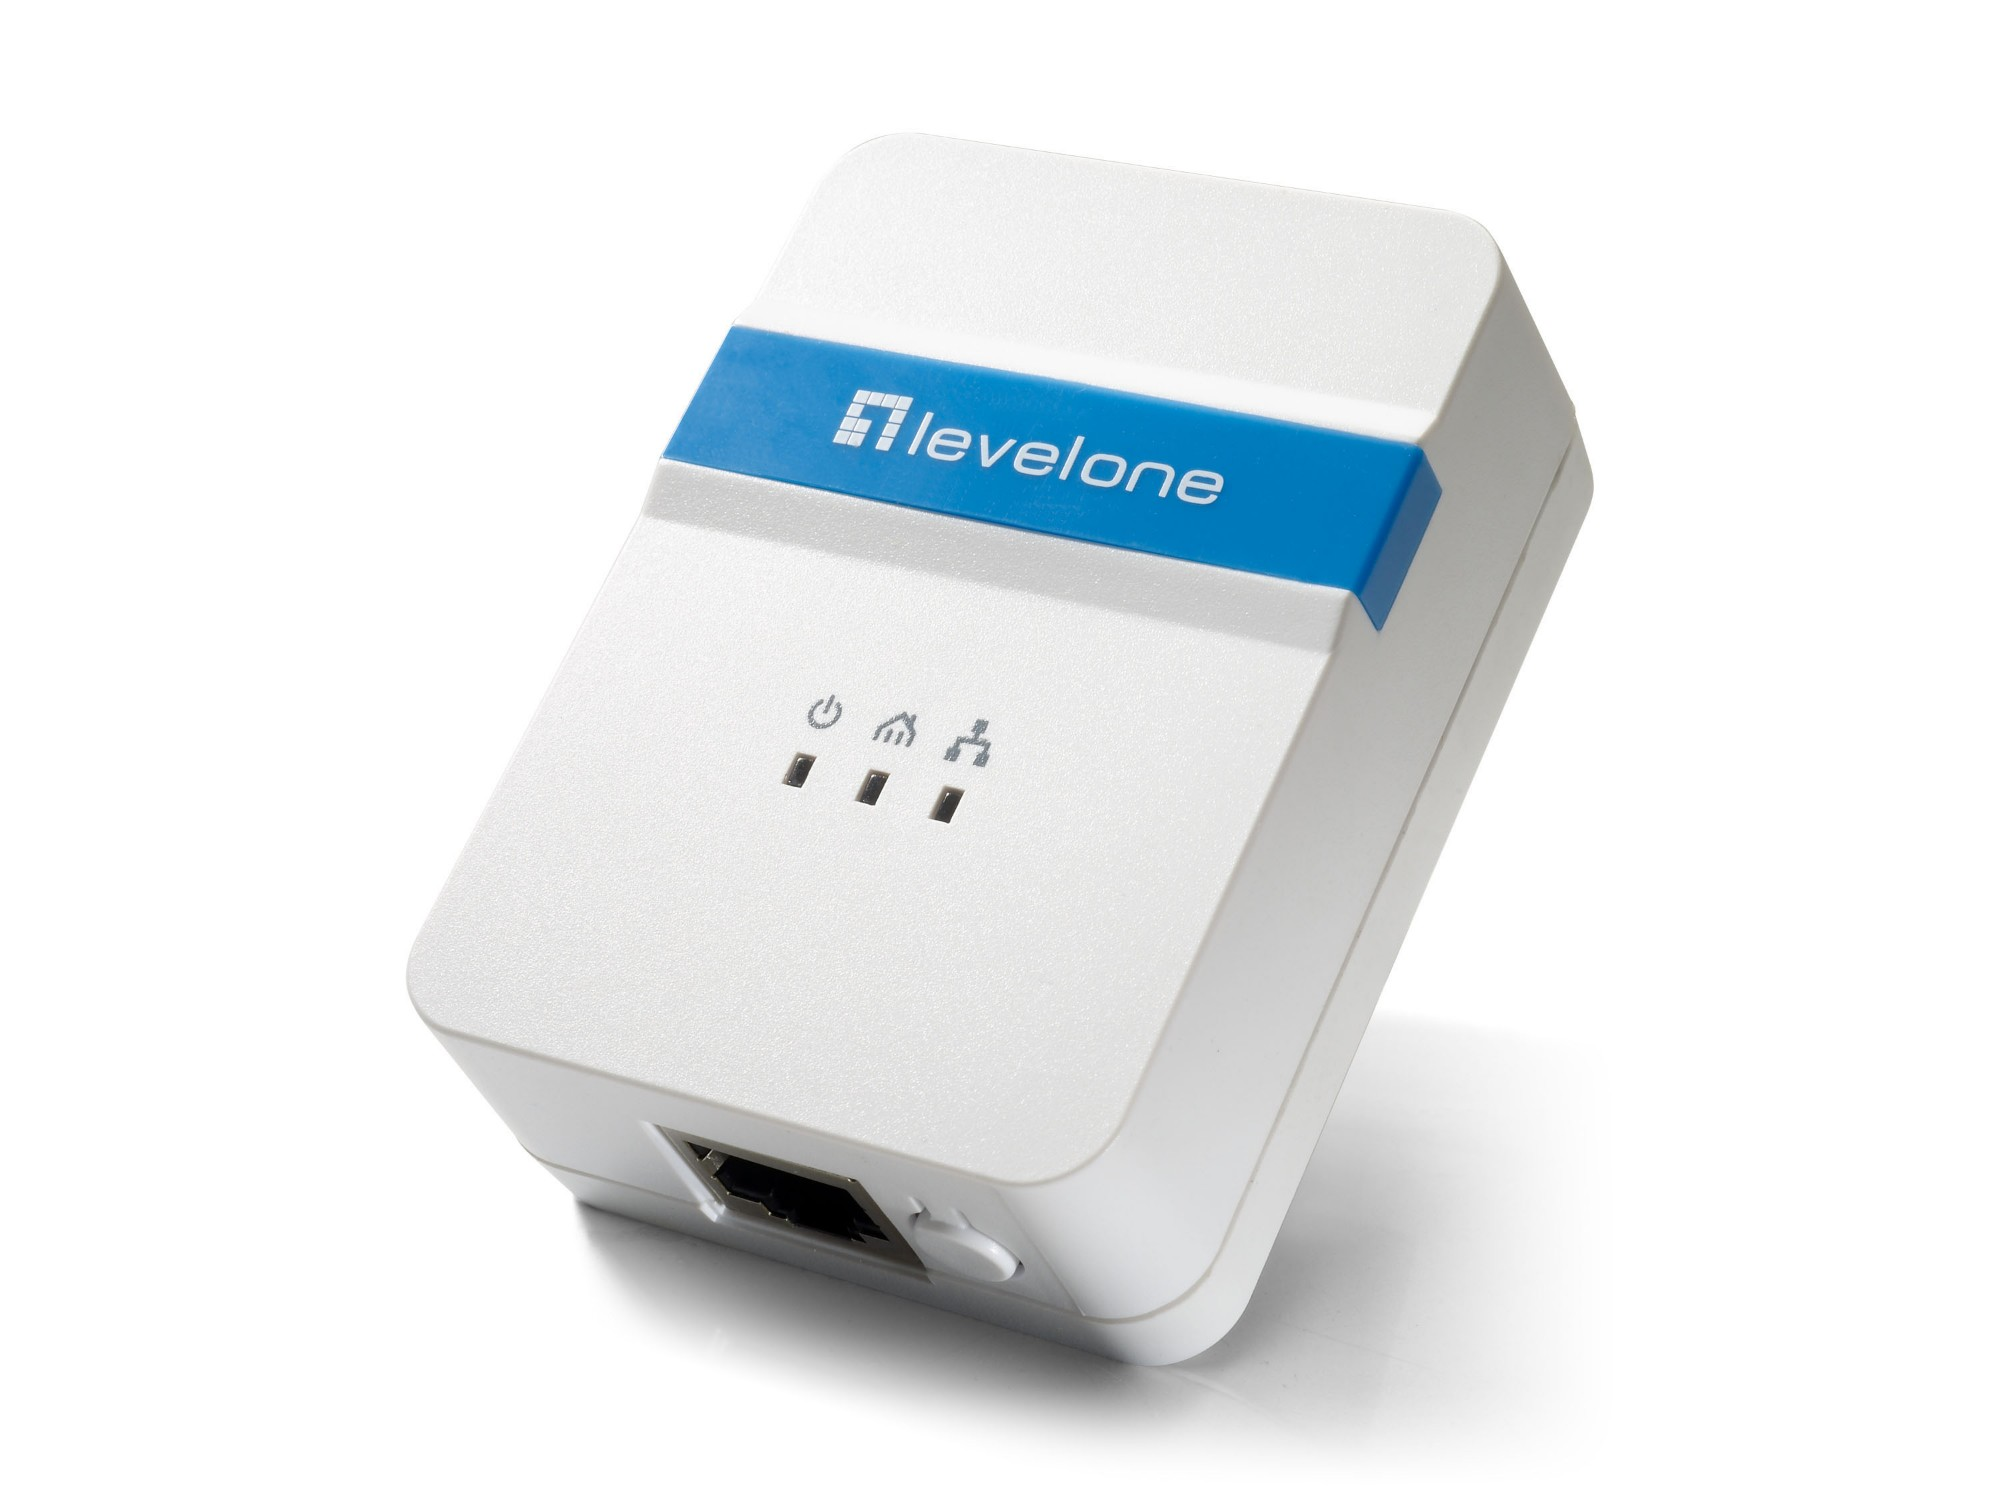 LevelOne 500Mbps Powerline Adapter